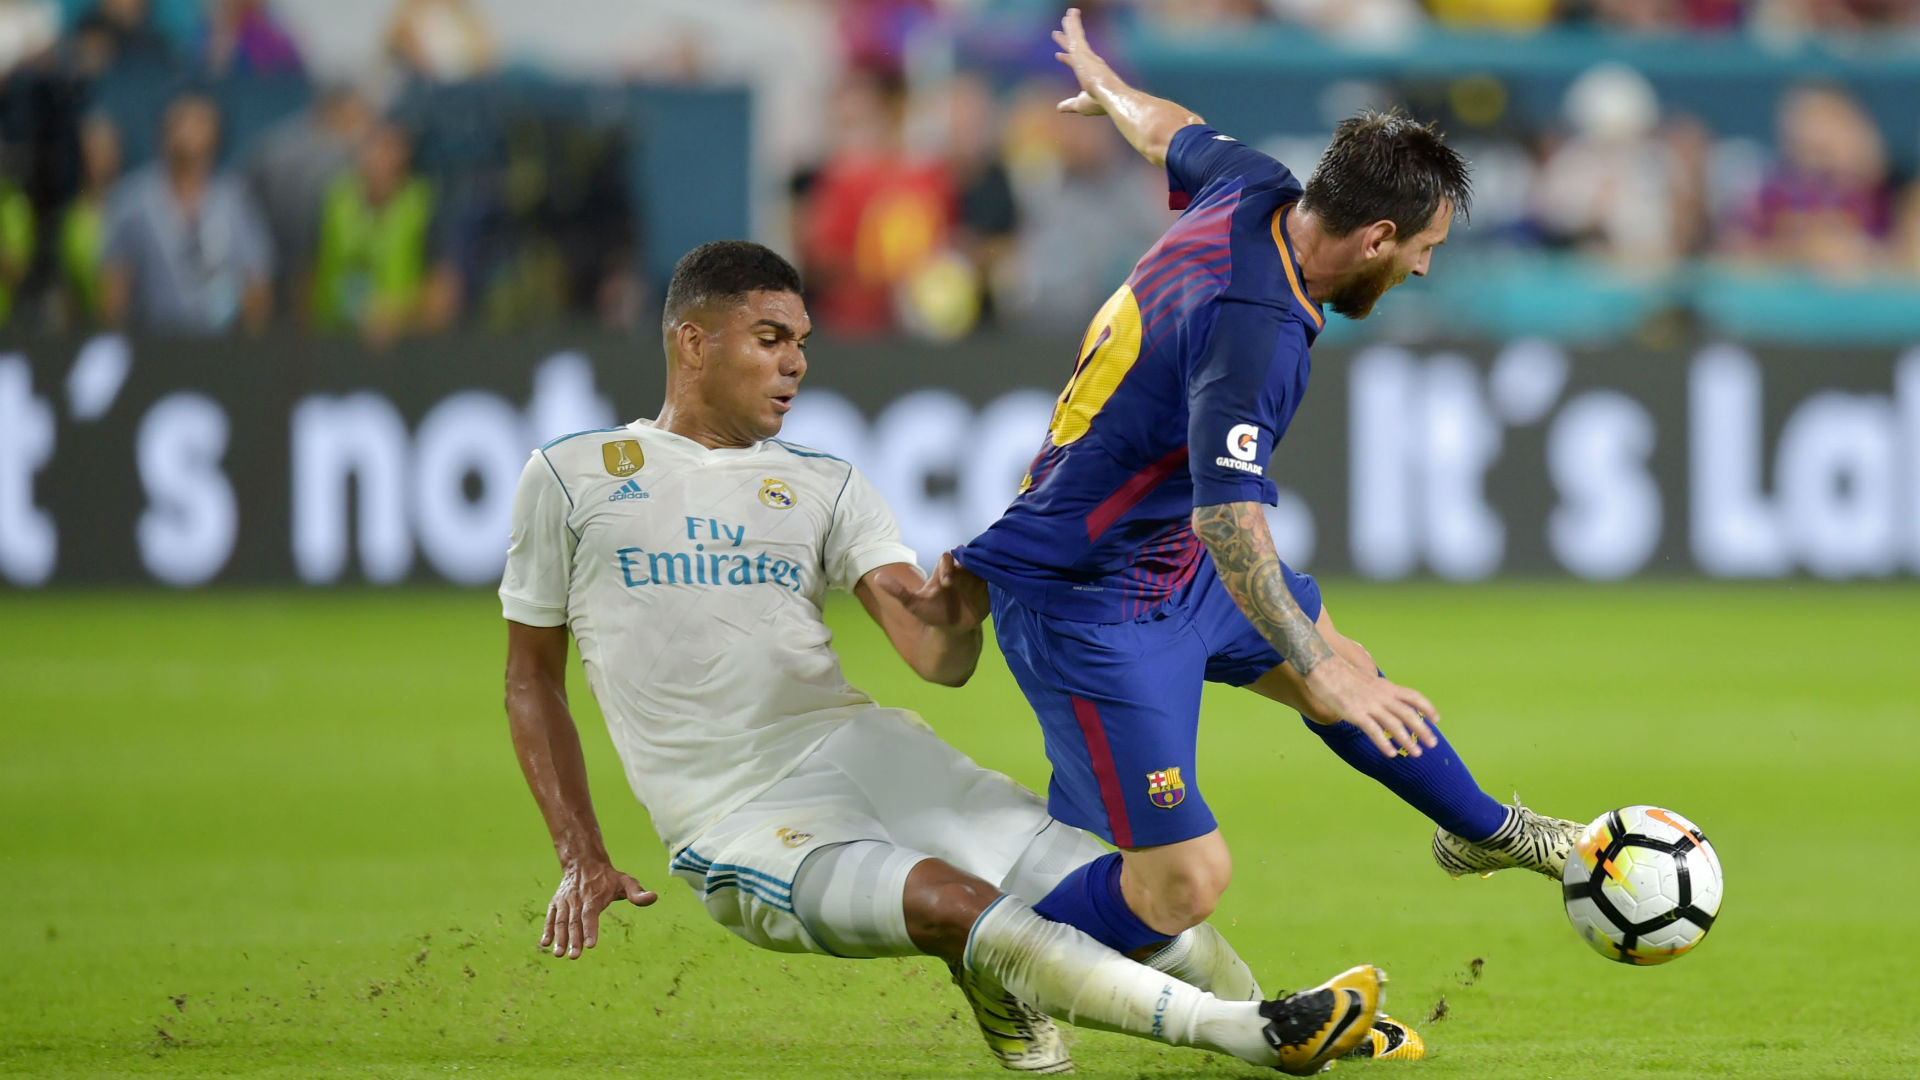 Lionel Messi Casemiro Real Madrid Barcelona ICC